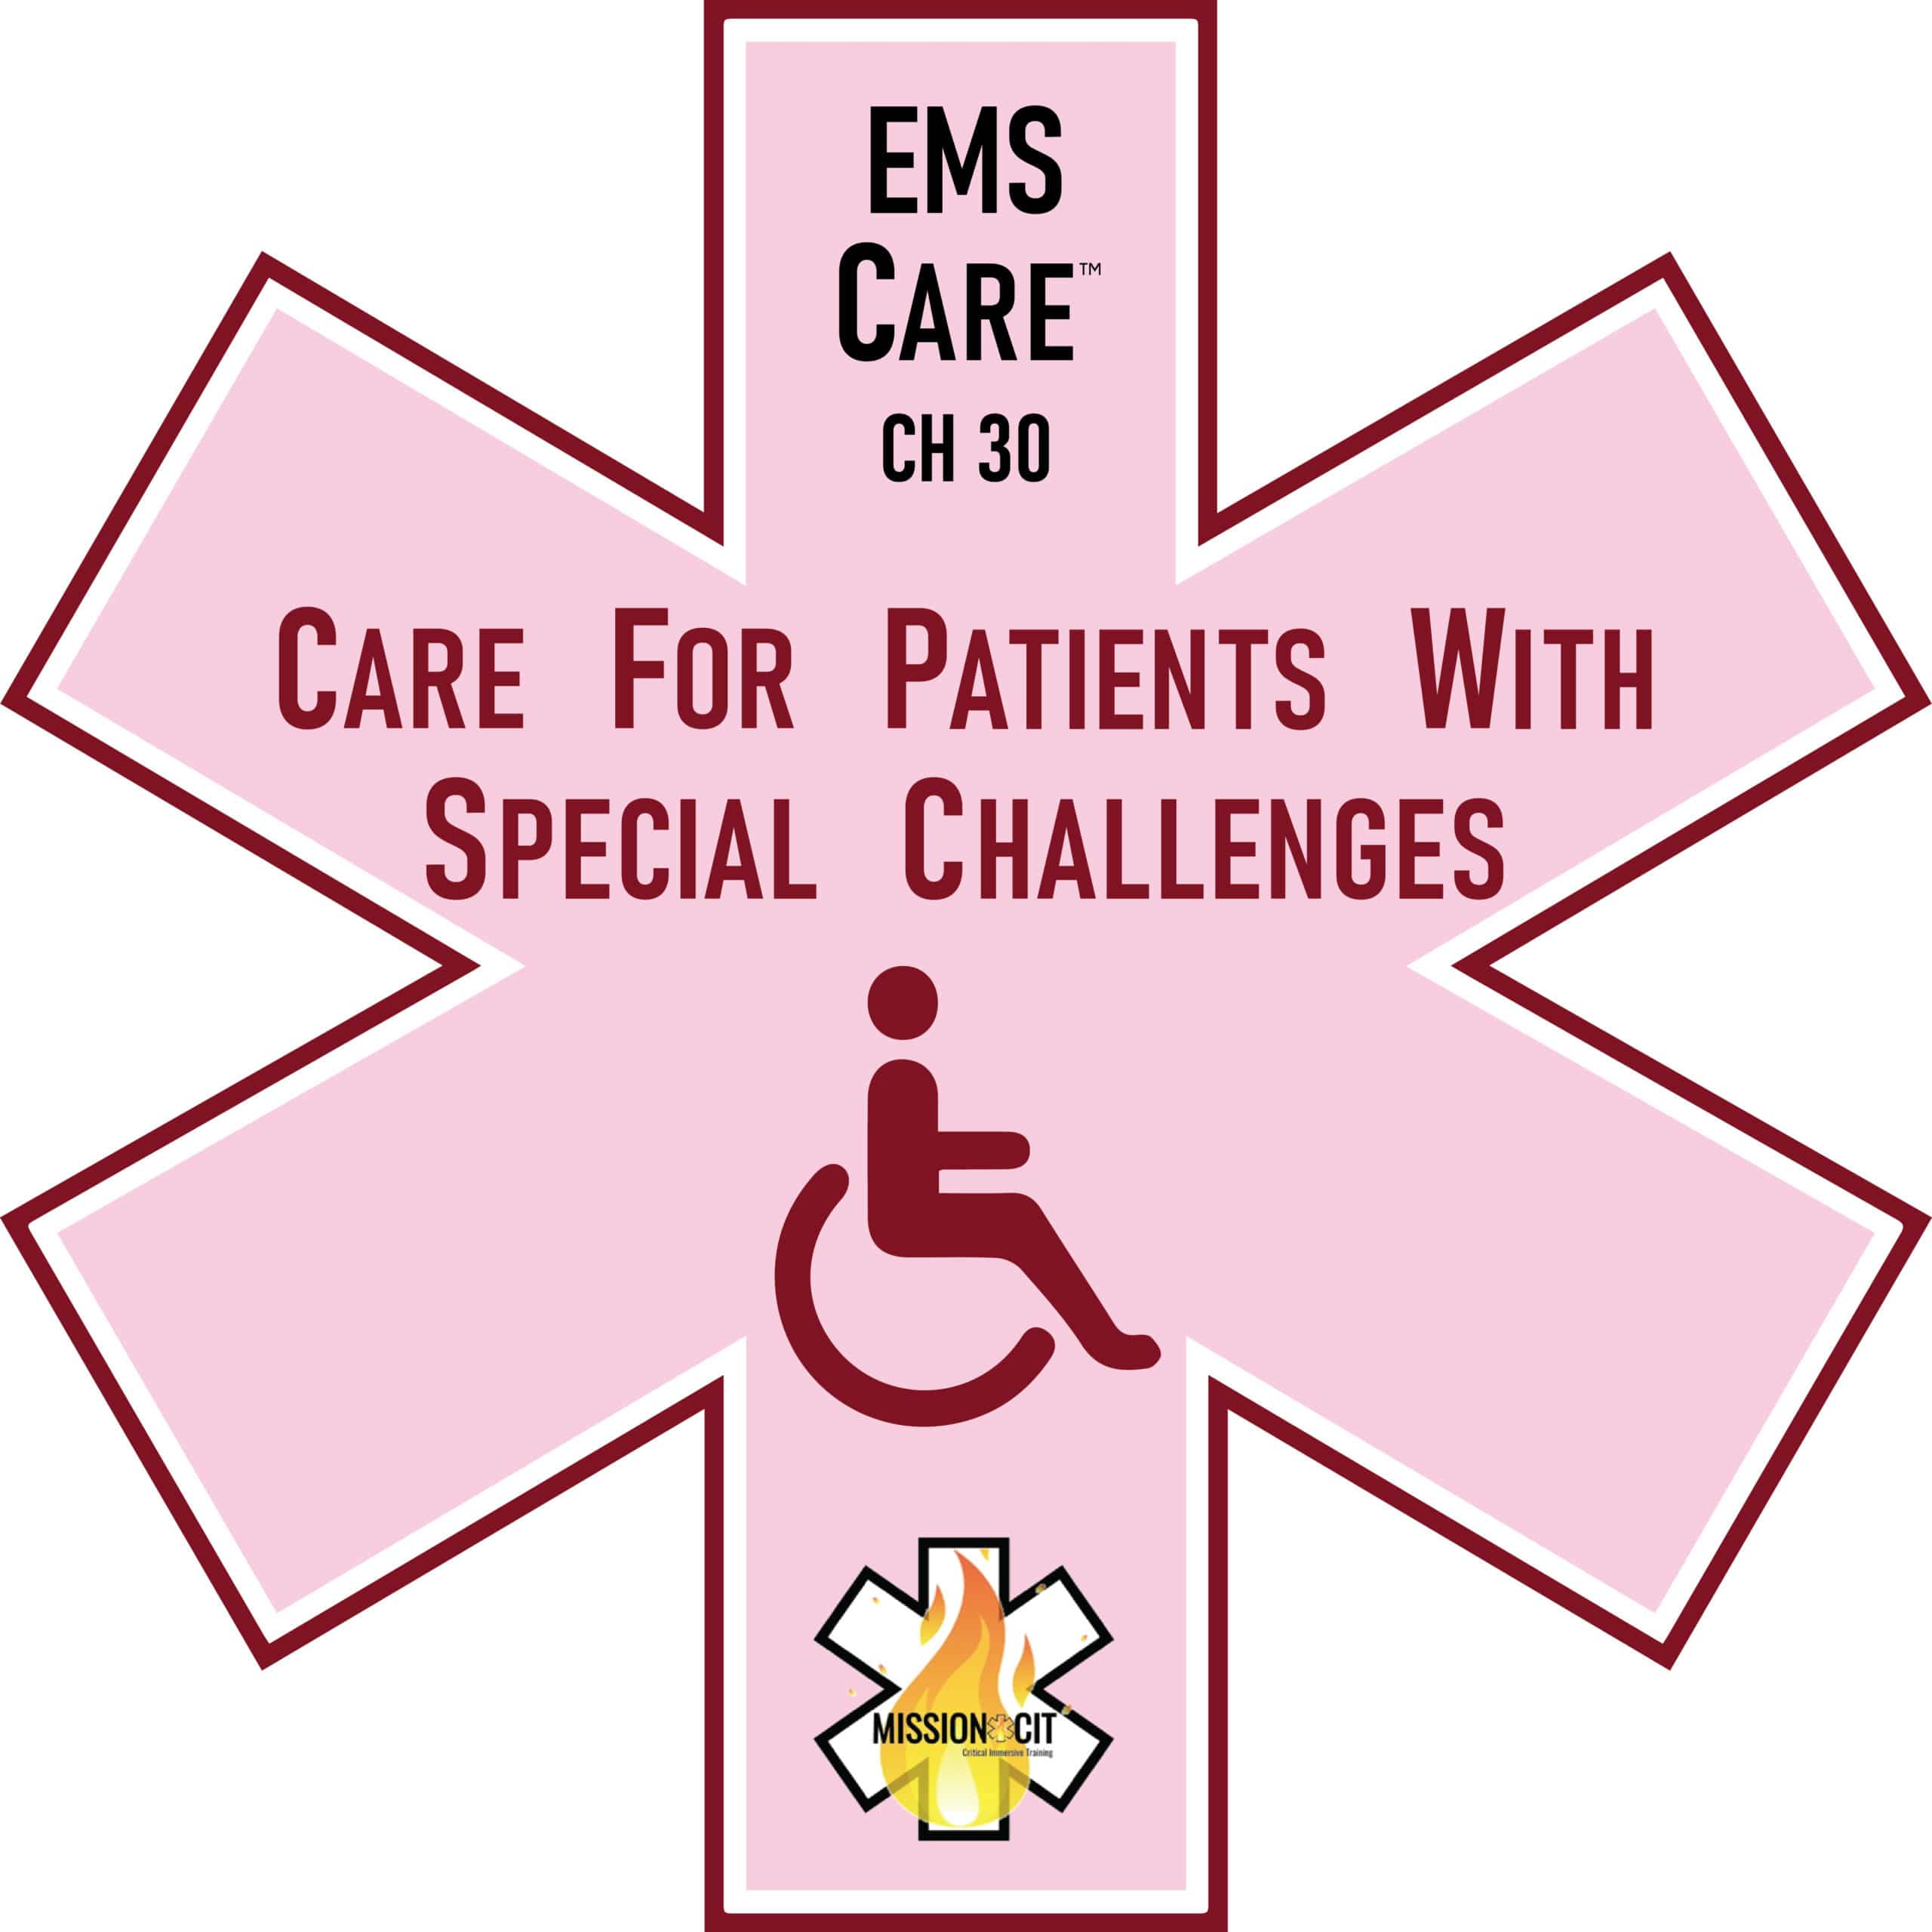 EMS Care Chapter 30 | Care for Patients with Special Challenges